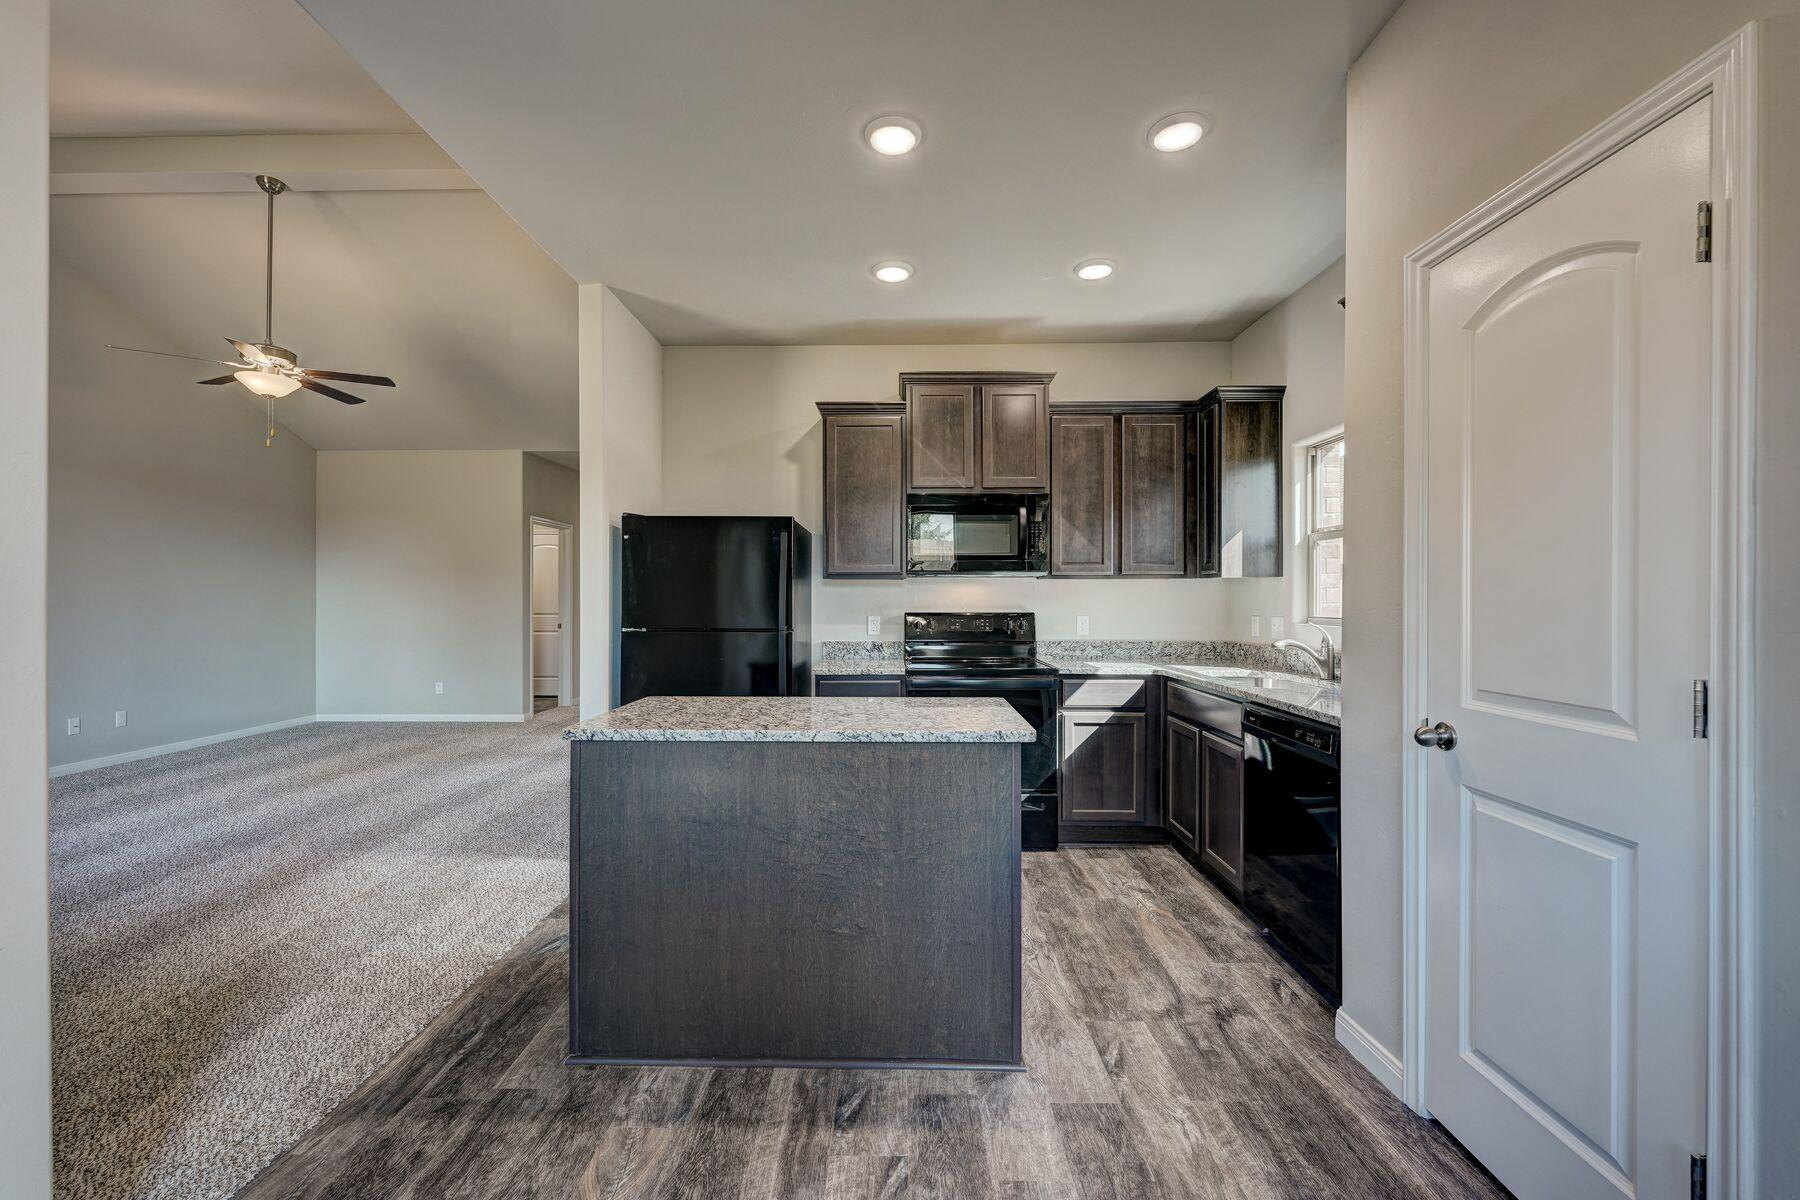 Kitchen featured in the Sabine By LGI Homes in Oklahoma City, OK